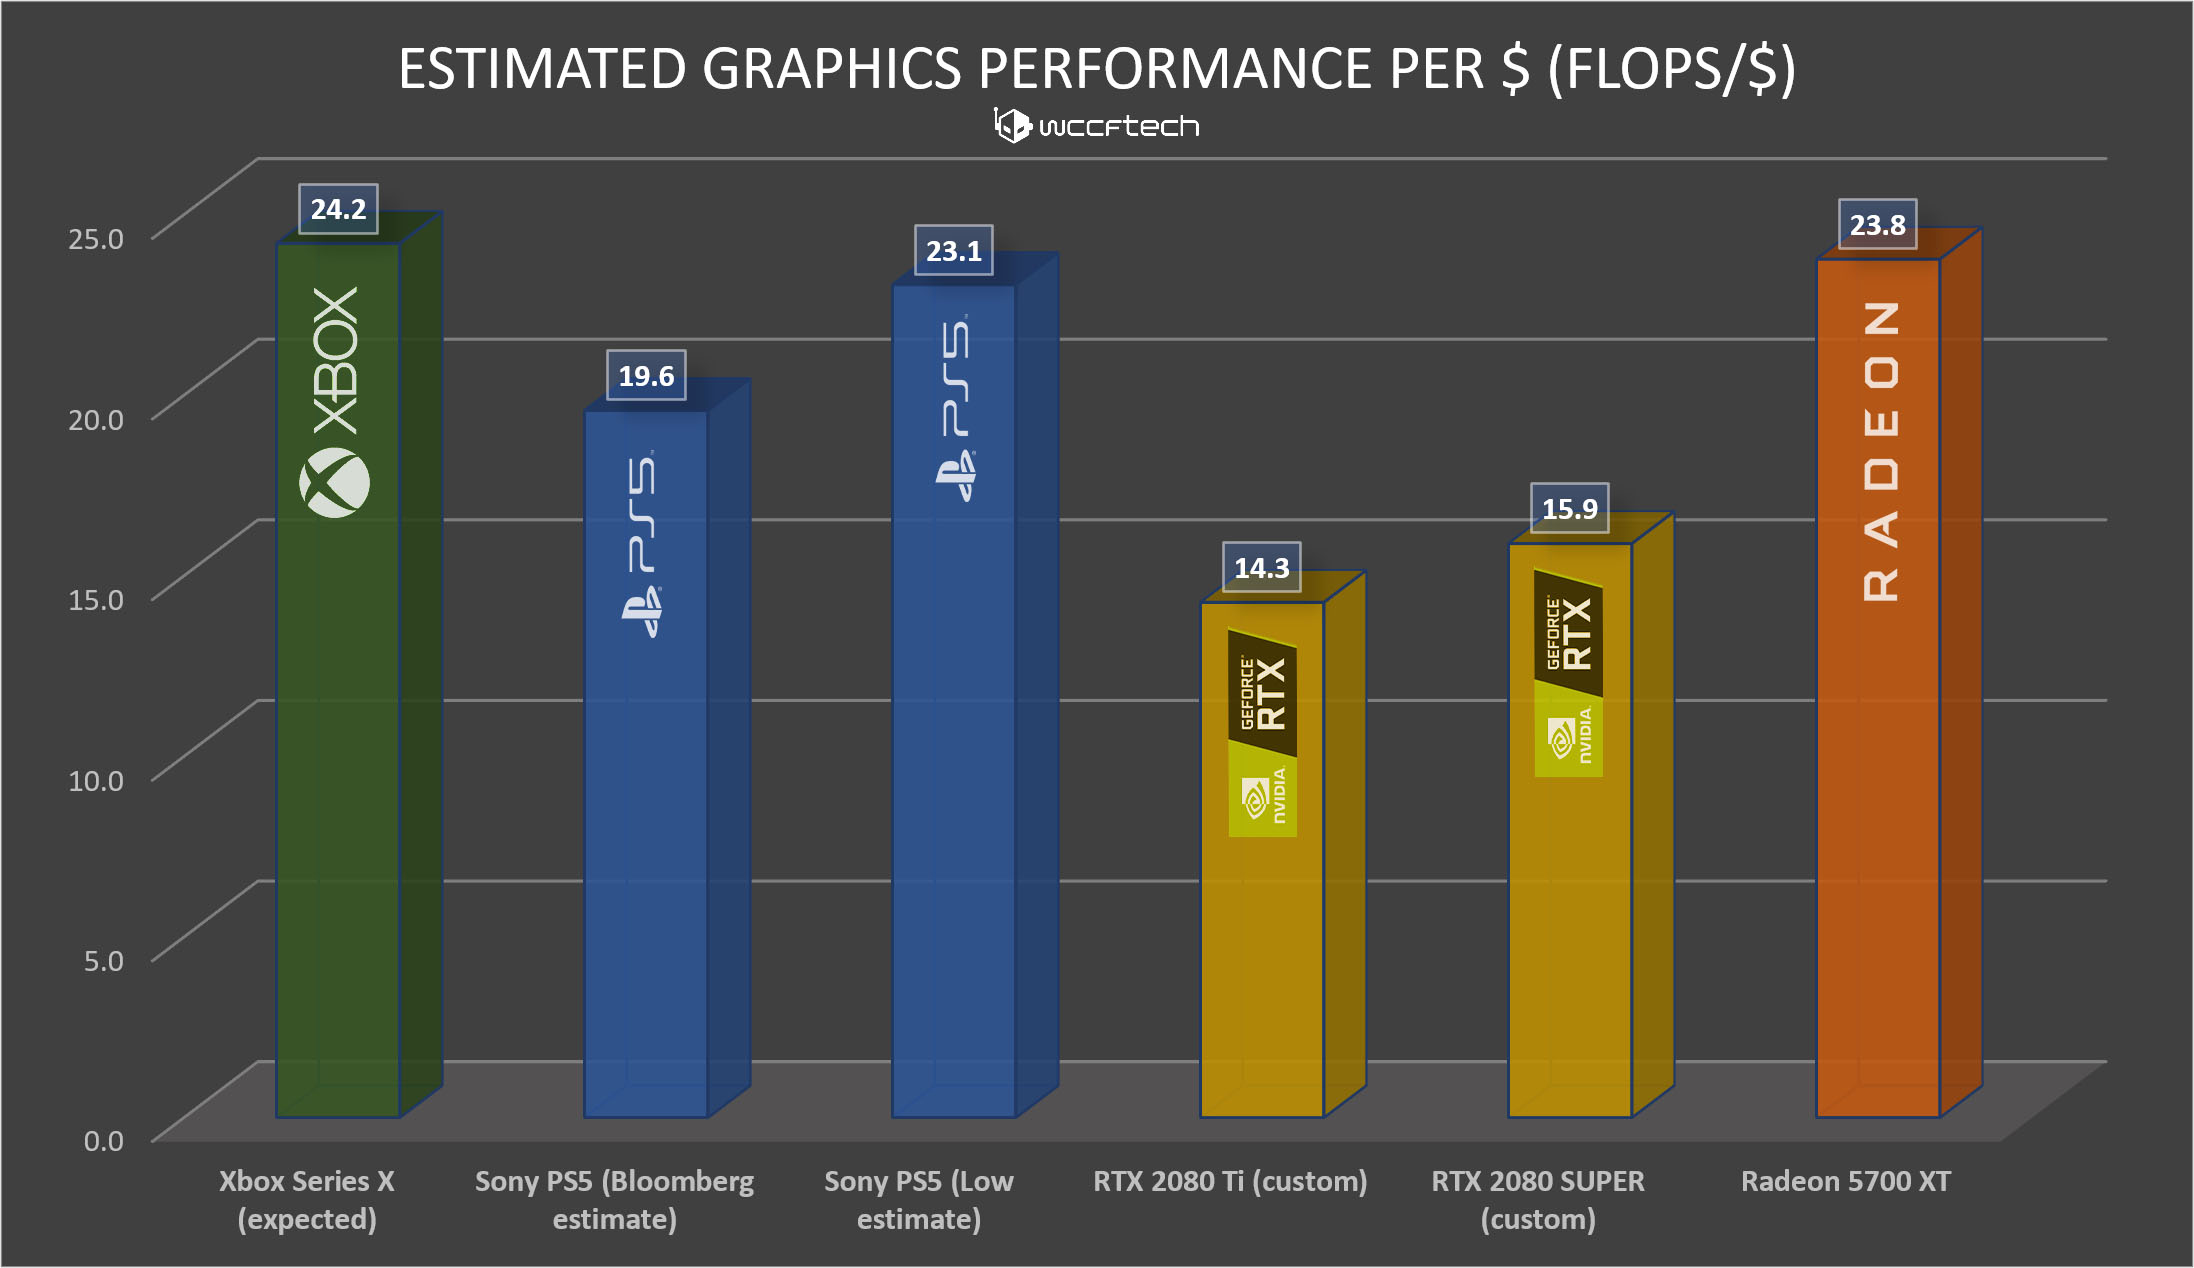 Sony Ps5 Vs Xbox Series X Technical Analysis Why The Ps5 S 10 3 Tflops Figure Is Misleading